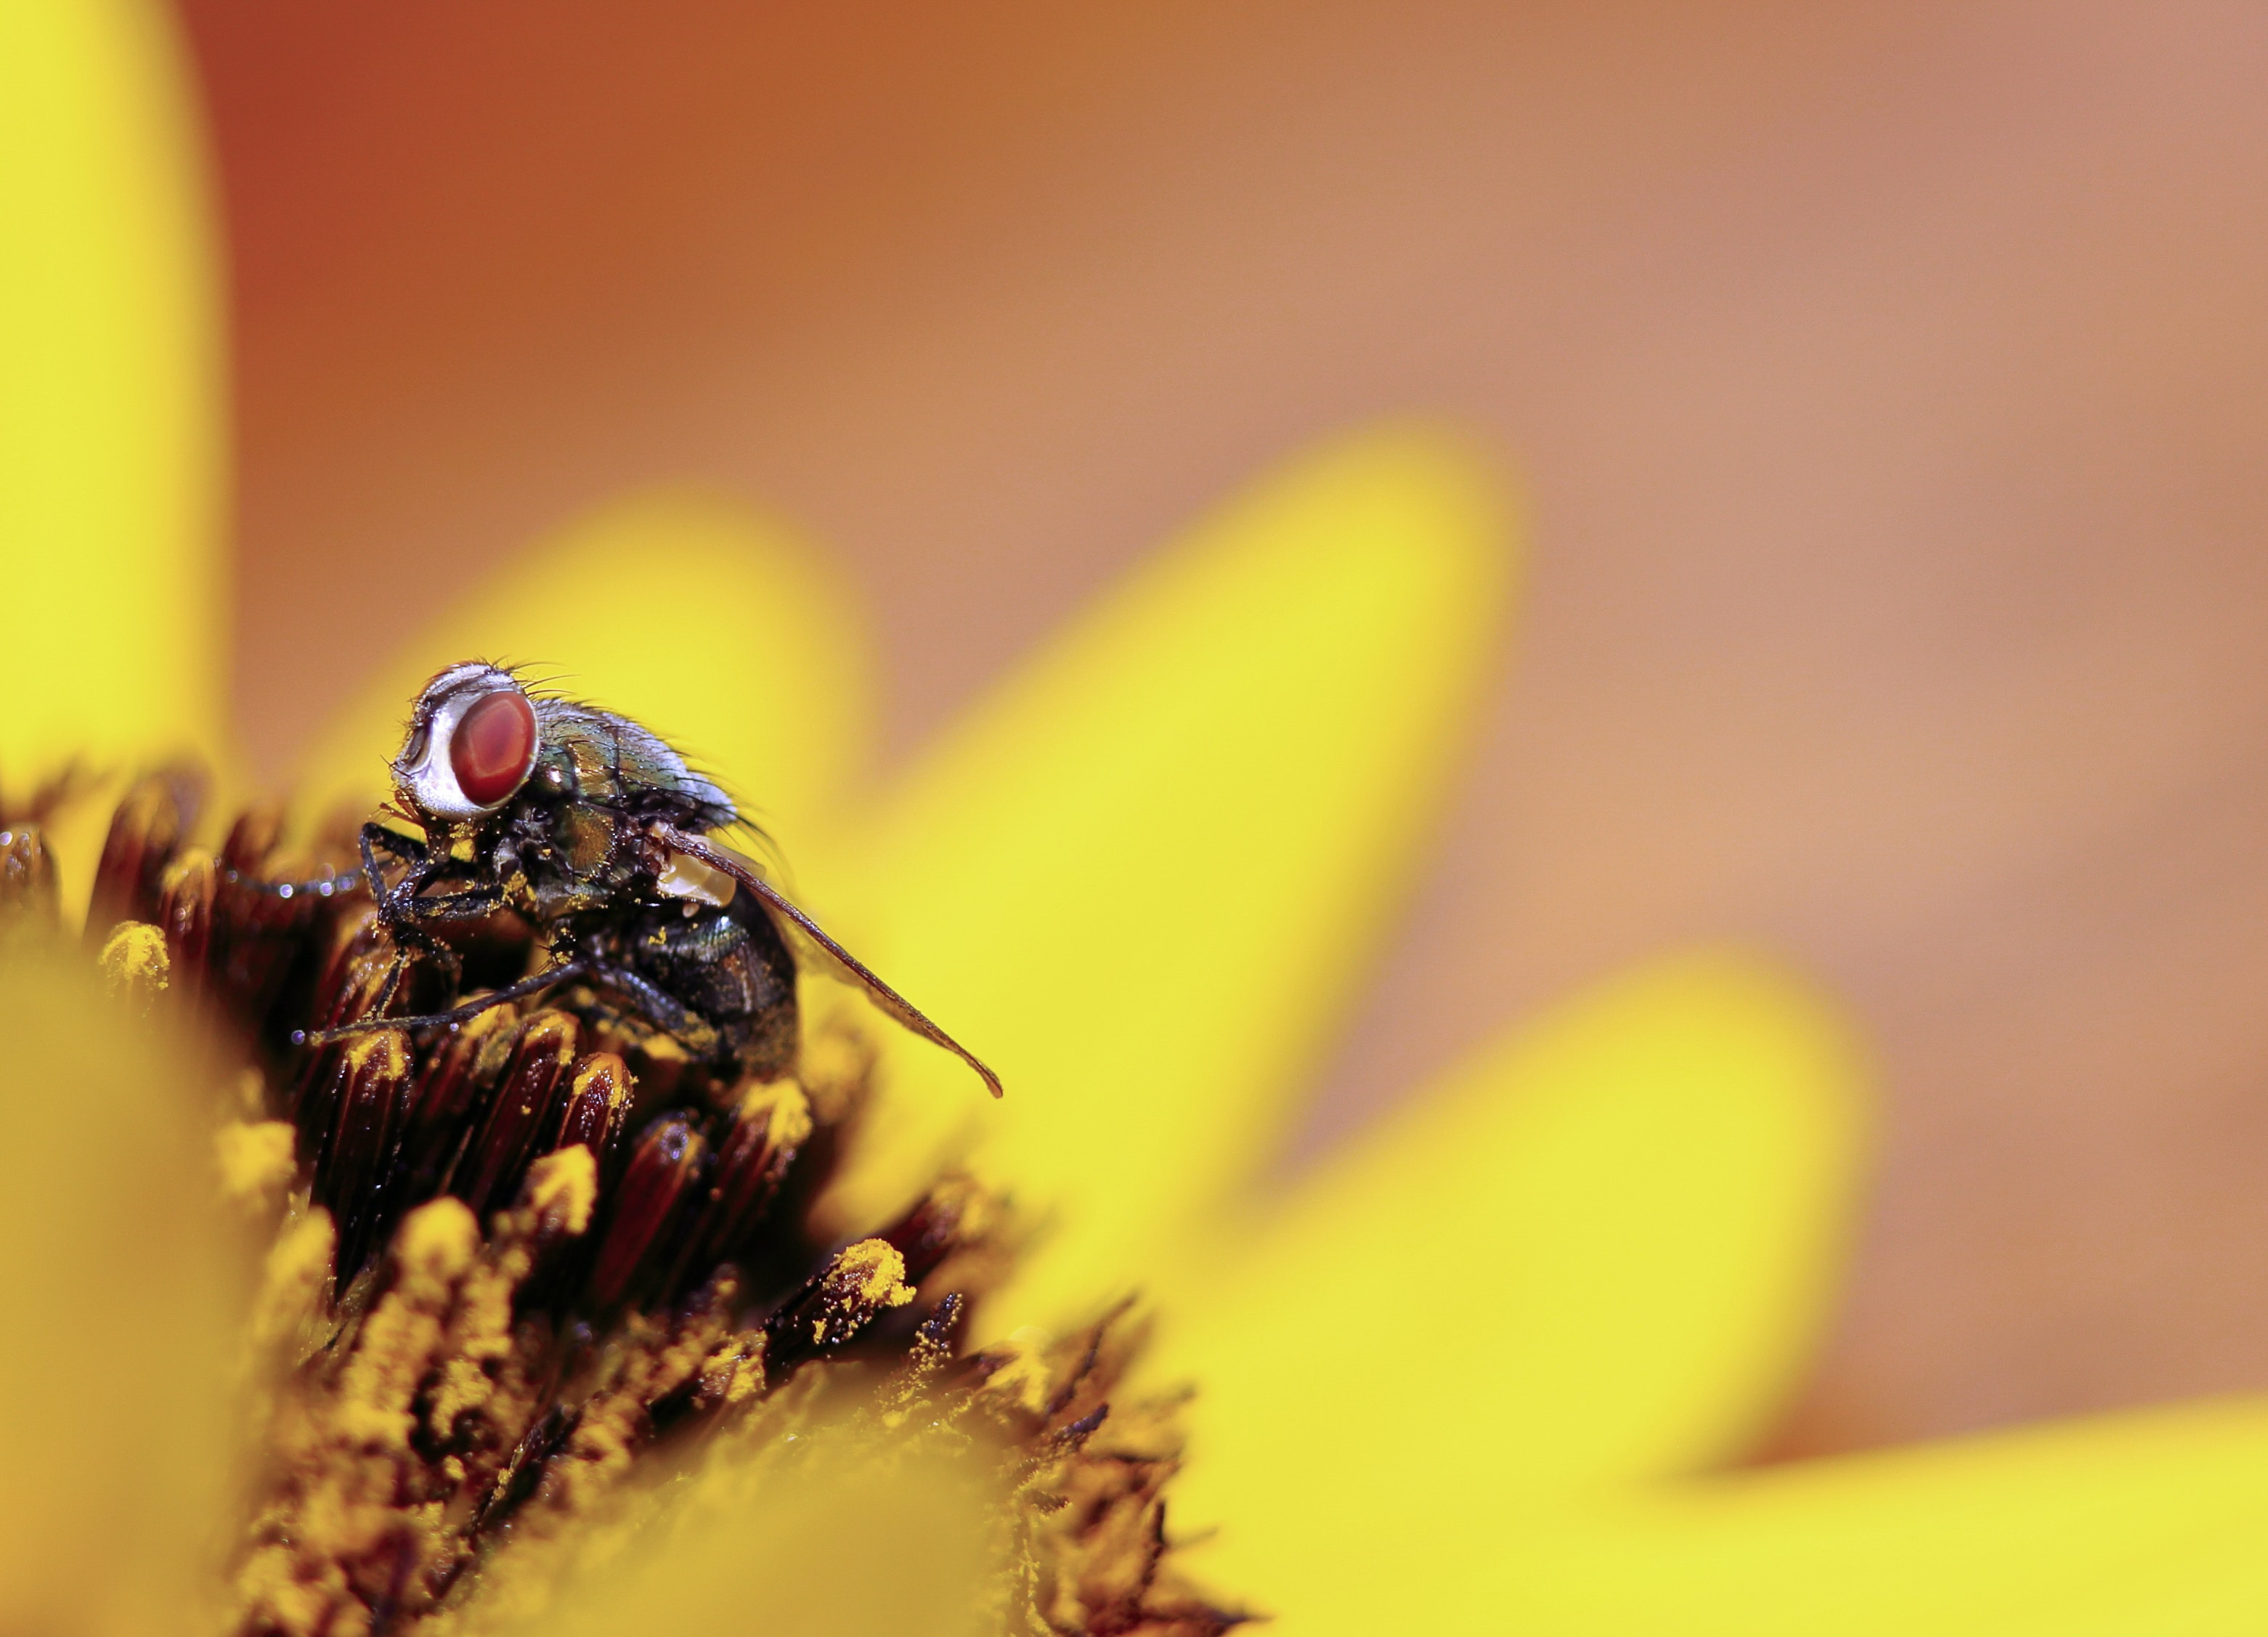 A macro shot of a fly in the center of a yellow flower